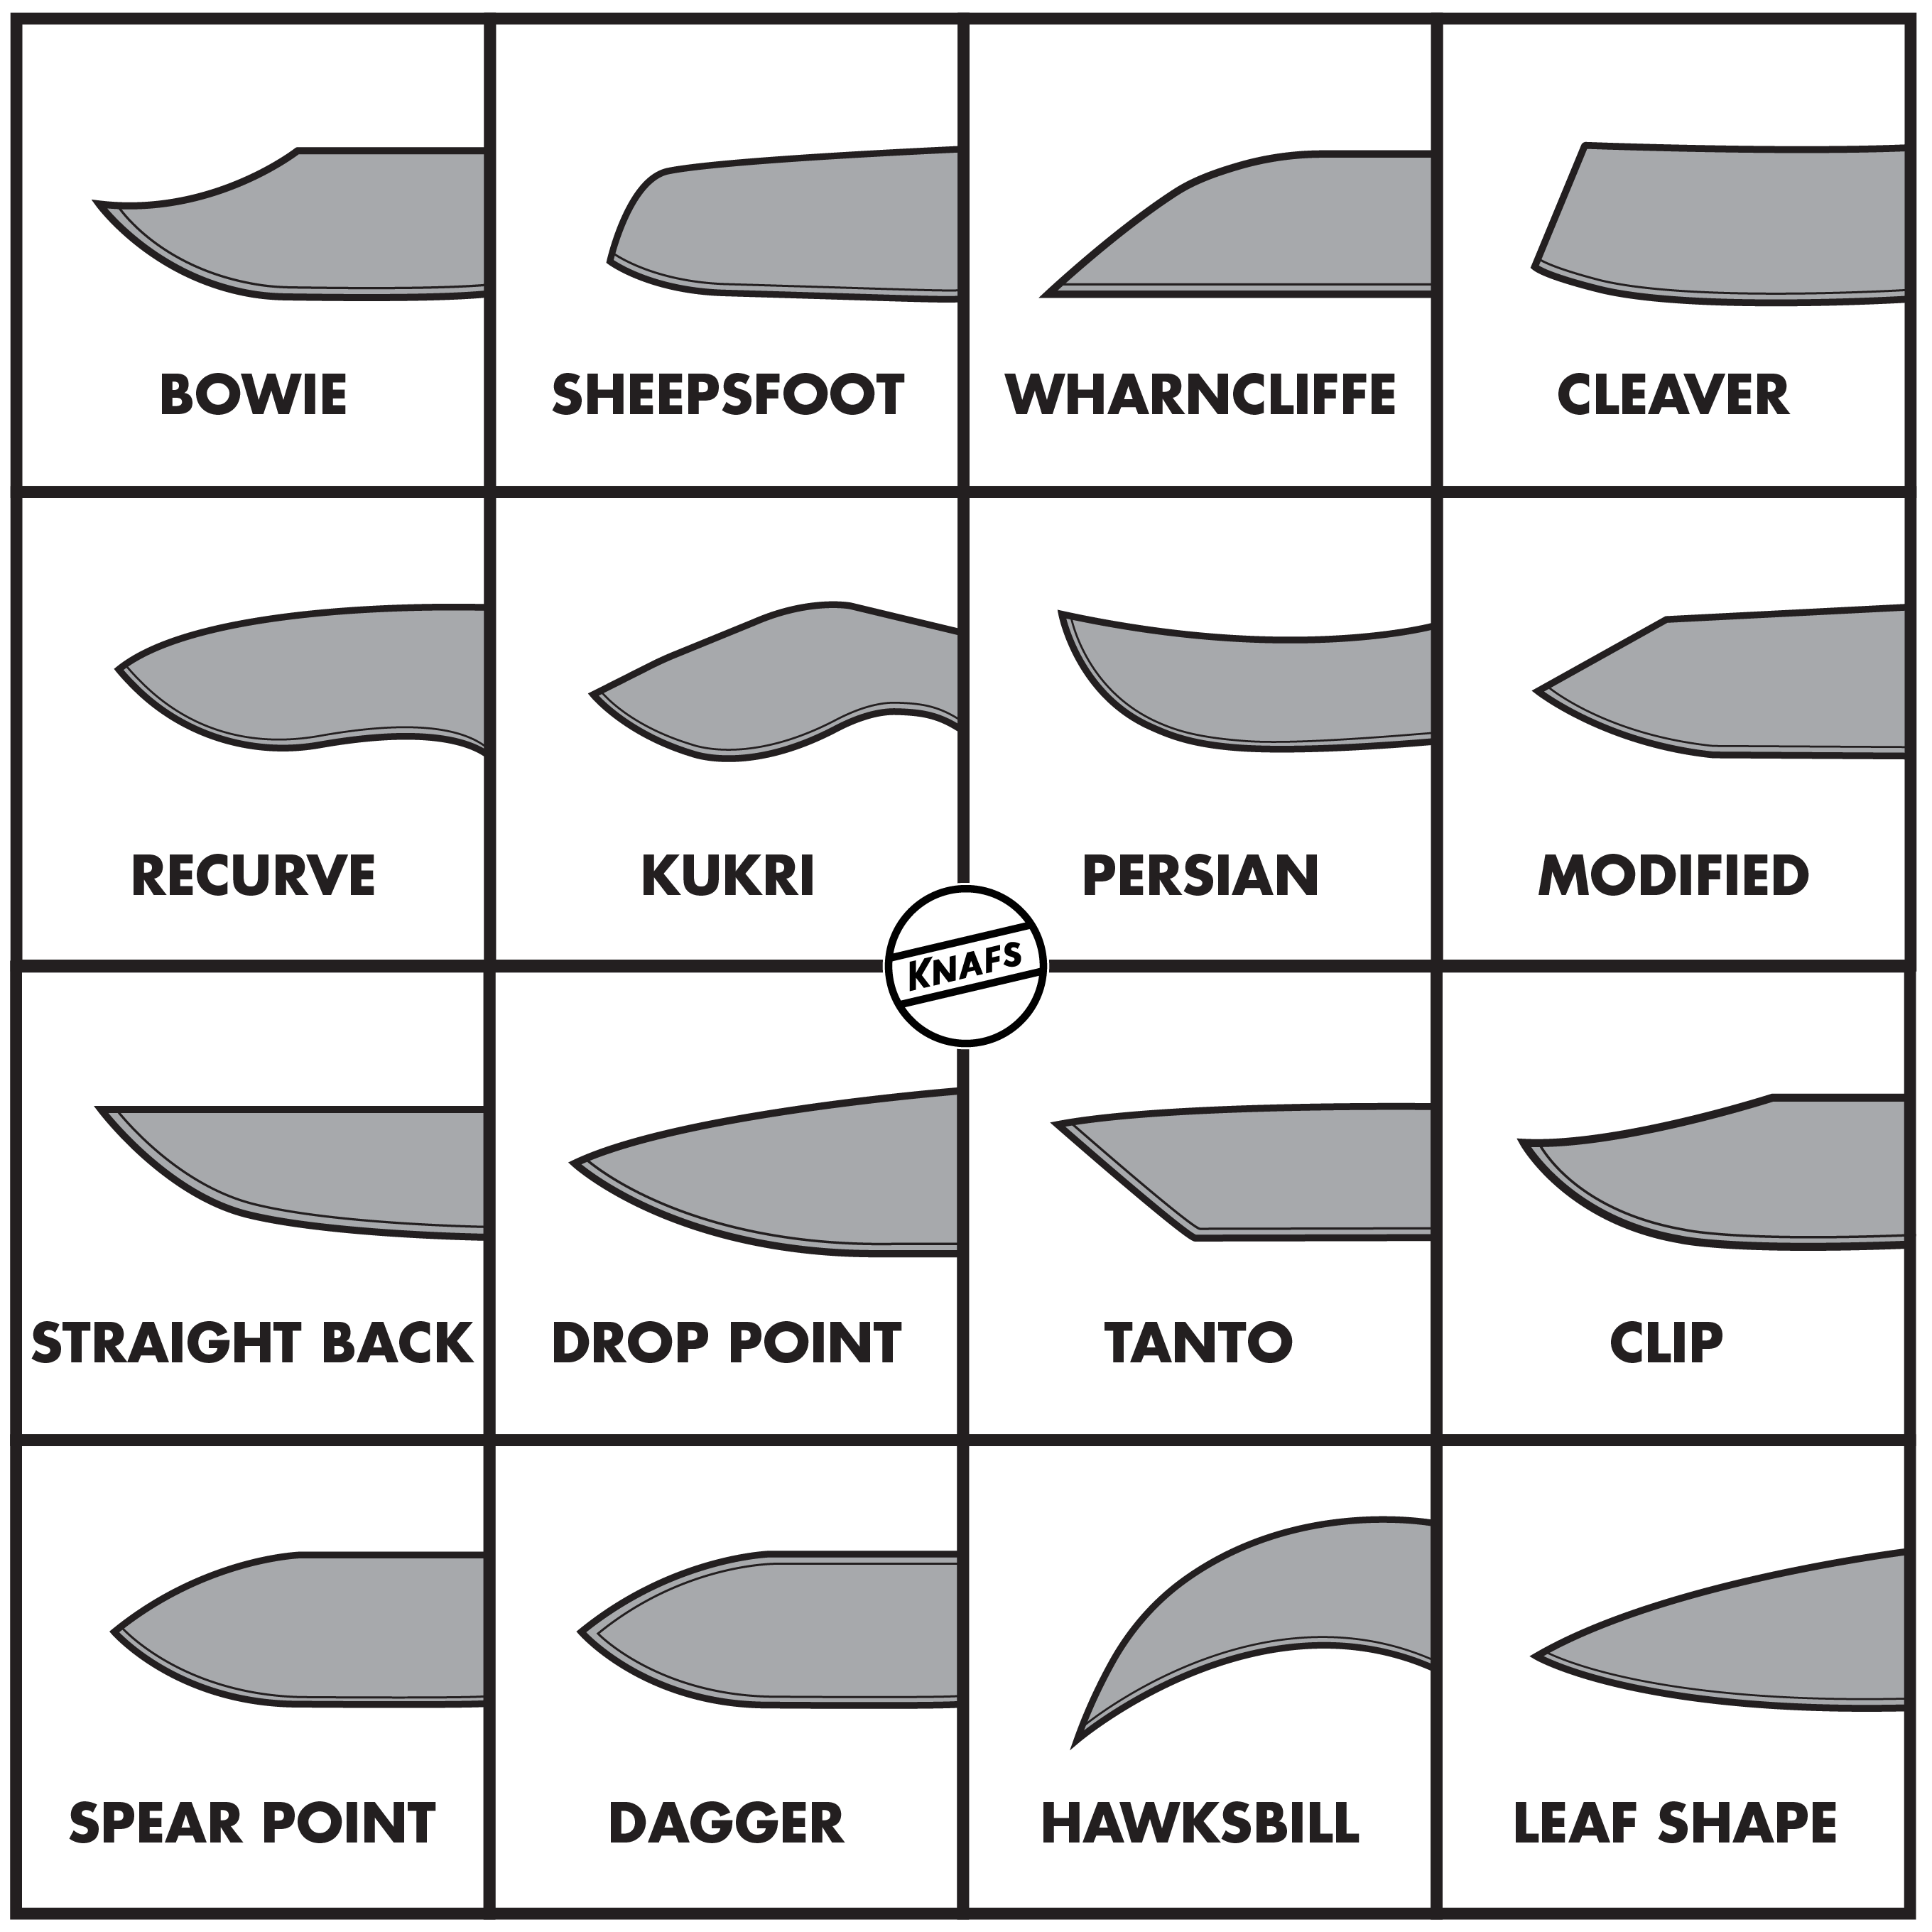 All common pocket knife blade shapes